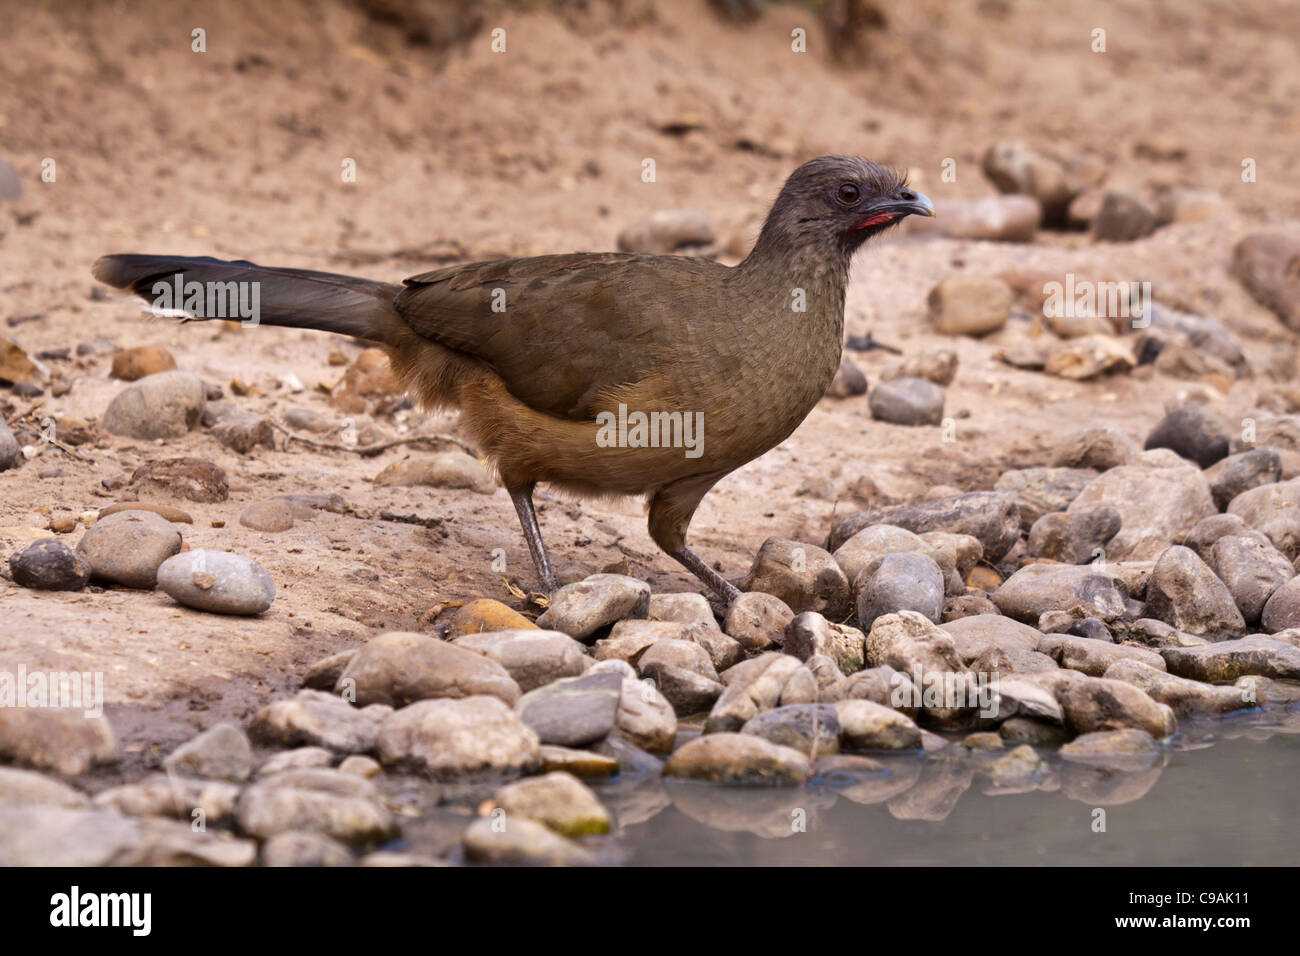 Plain Chachalaca, Ortalis vetula, at the Javelina-Martin wildlife refuge - Stock Image